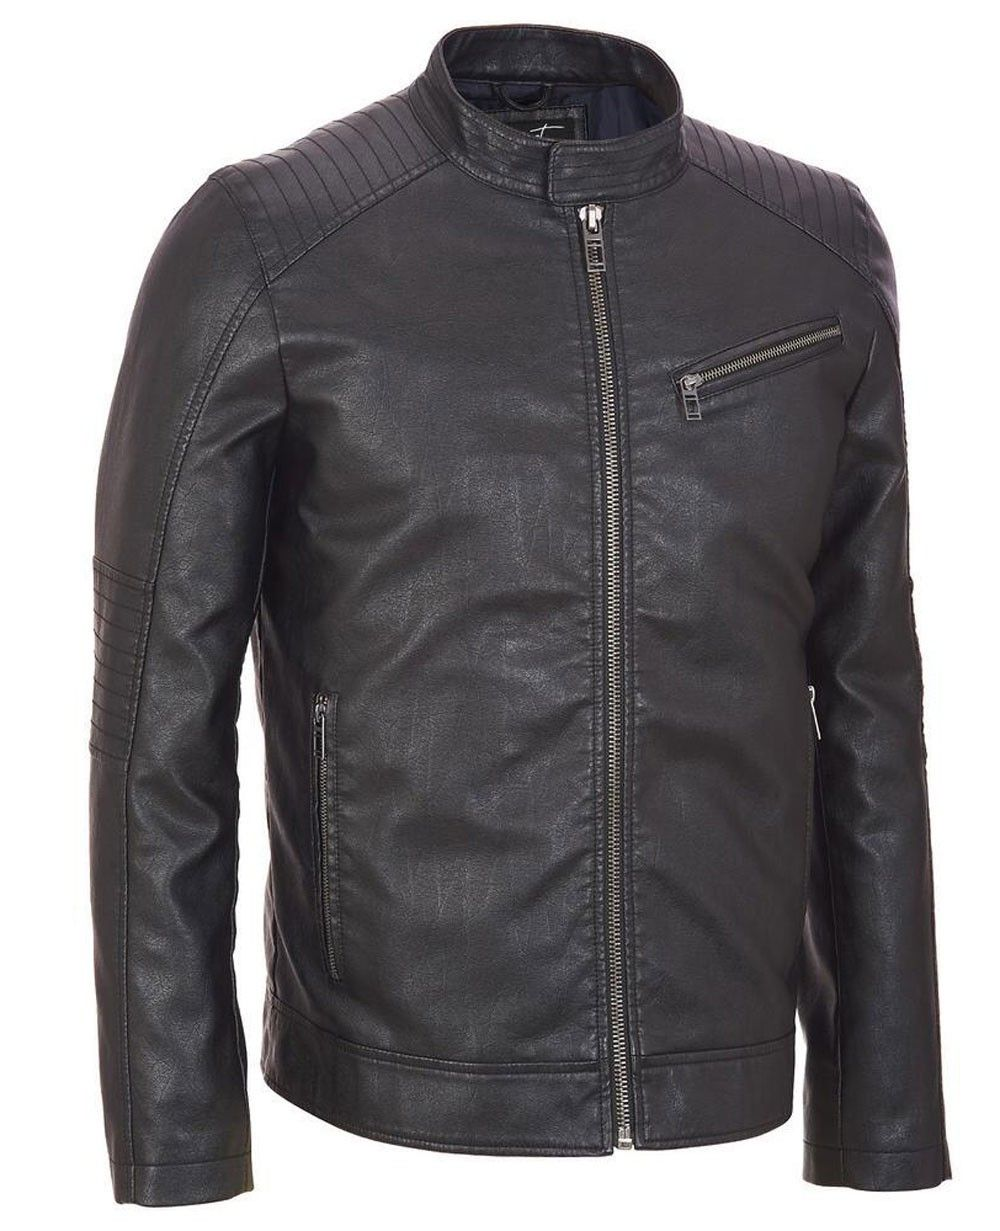 Http Www Quickapparels Com Best Selling Black Faux Leather Cycle Jacket Tab Collar Html Mens Big And Tall Jackets Clothing Brand [ 1231 x 1000 Pixel ]